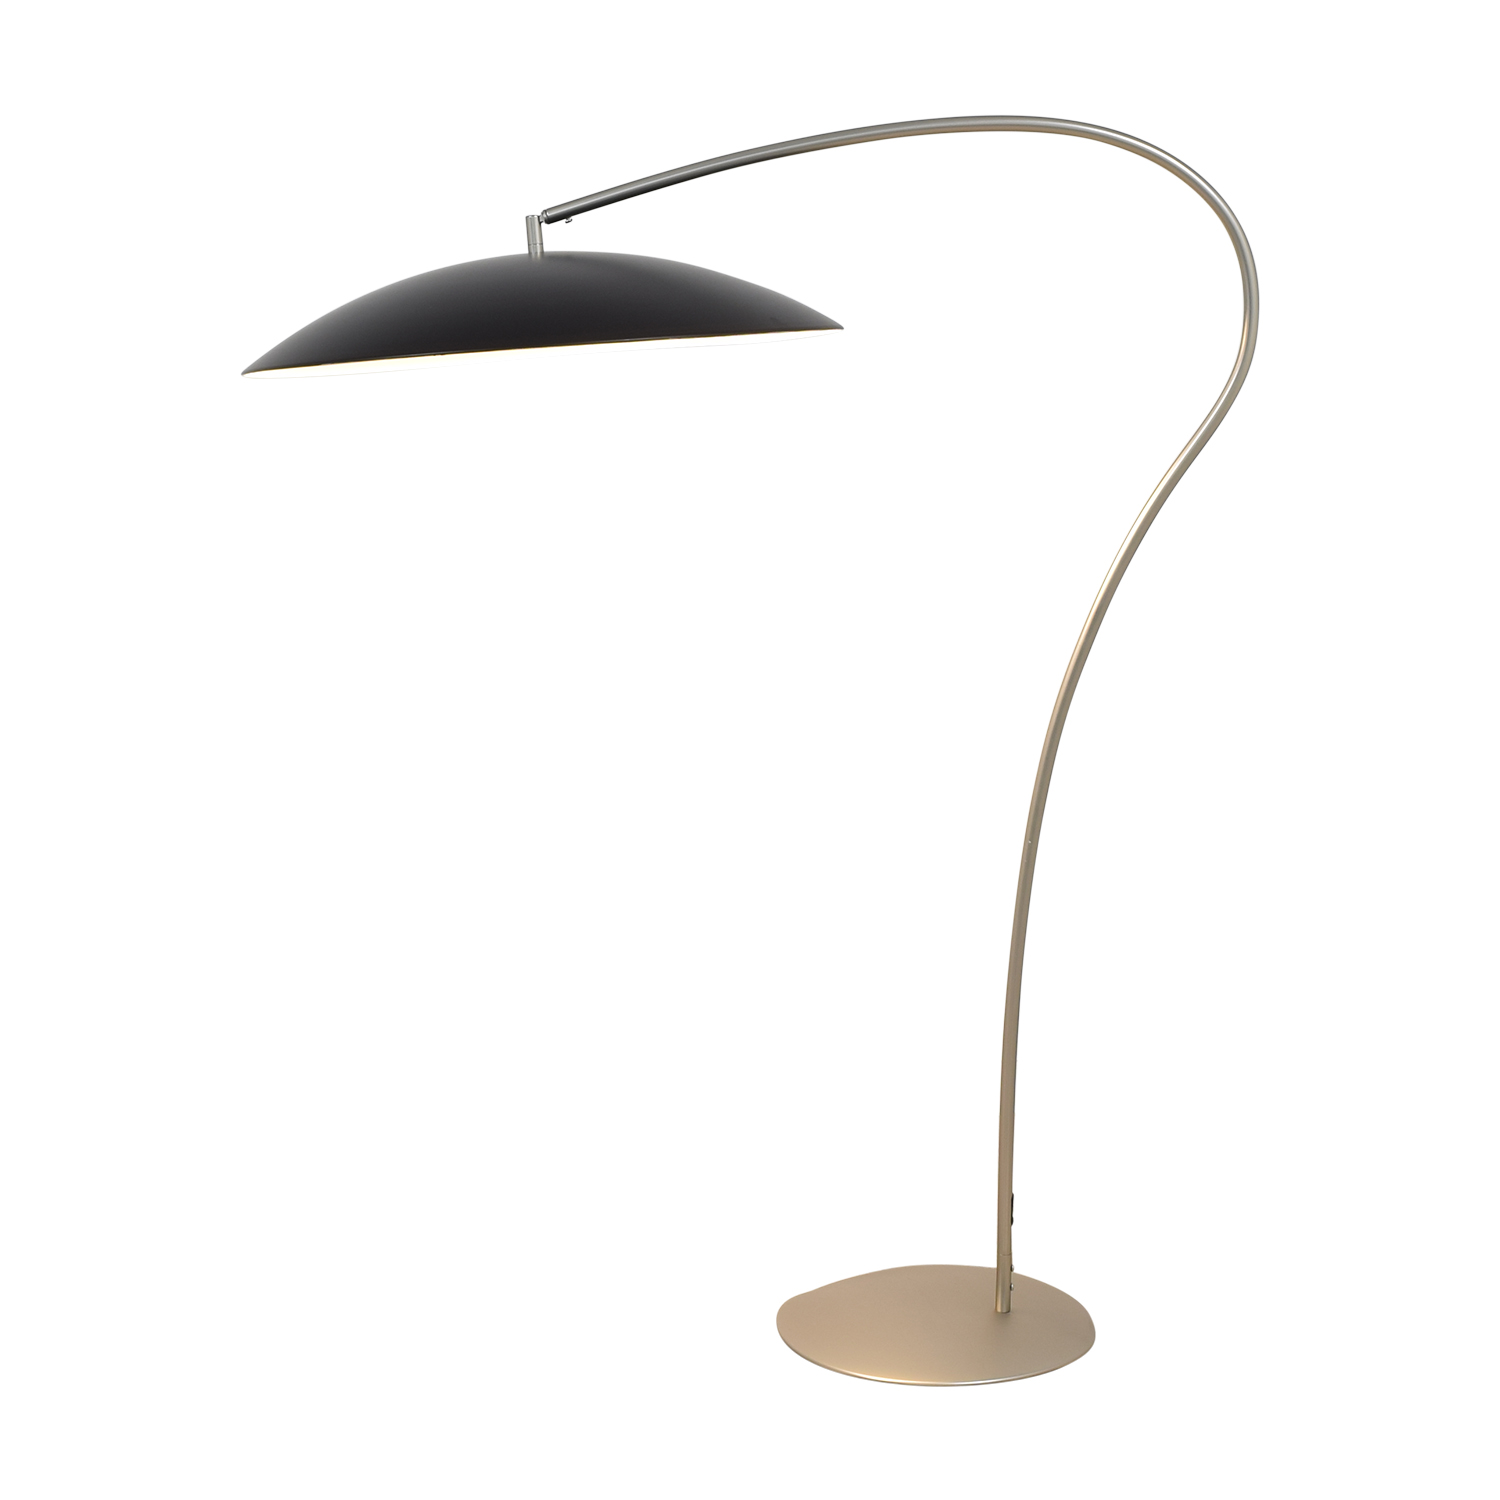 CB2 CB2 Atomic Arc Floor Lamp for sale